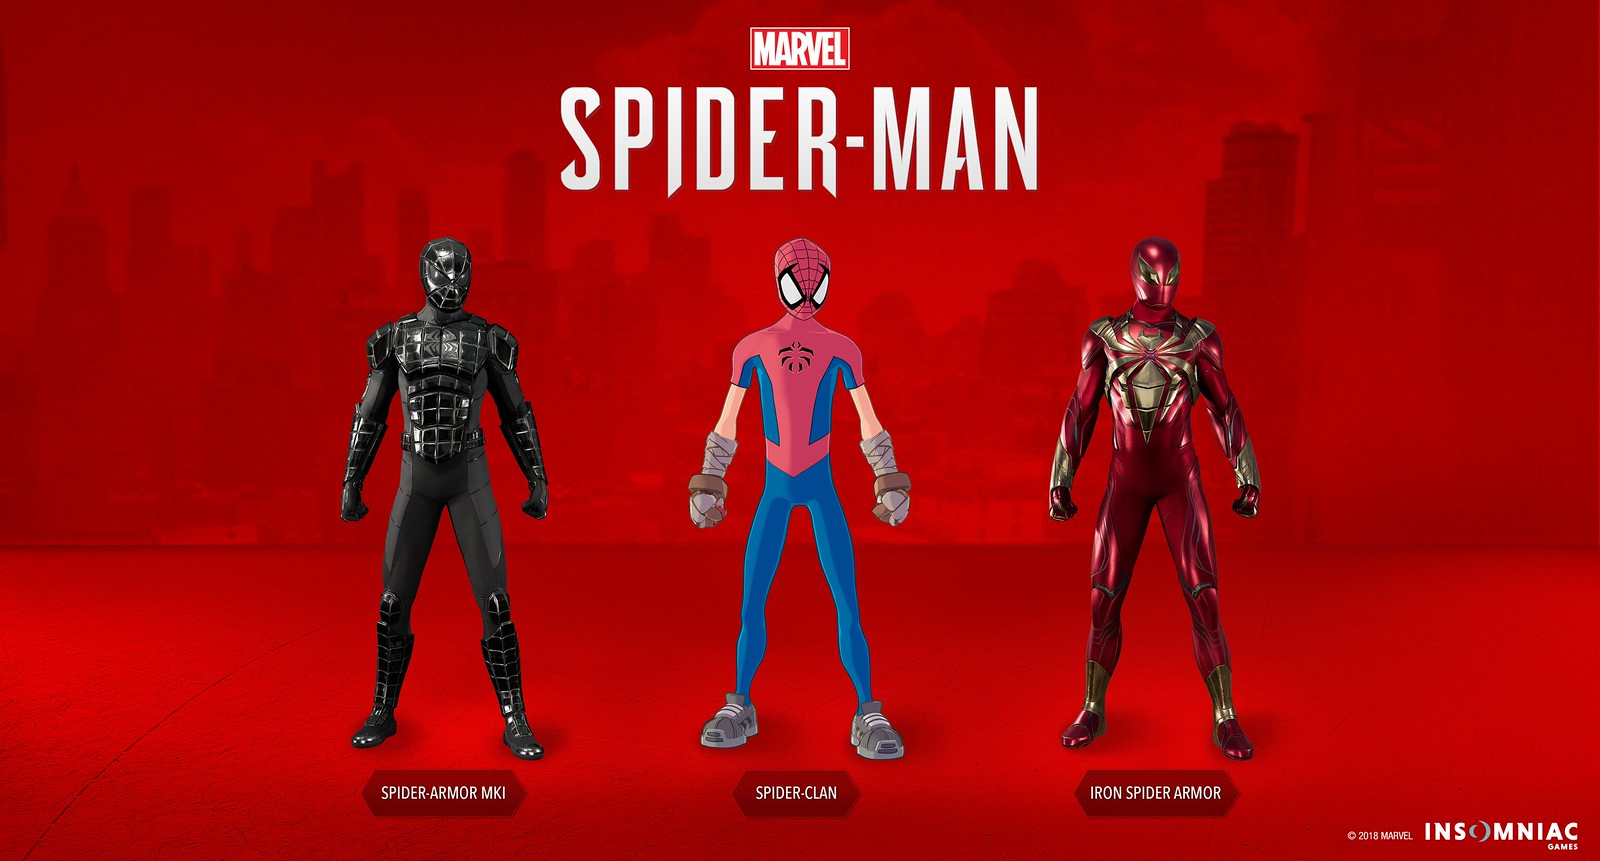 The three new Spider-Man suits